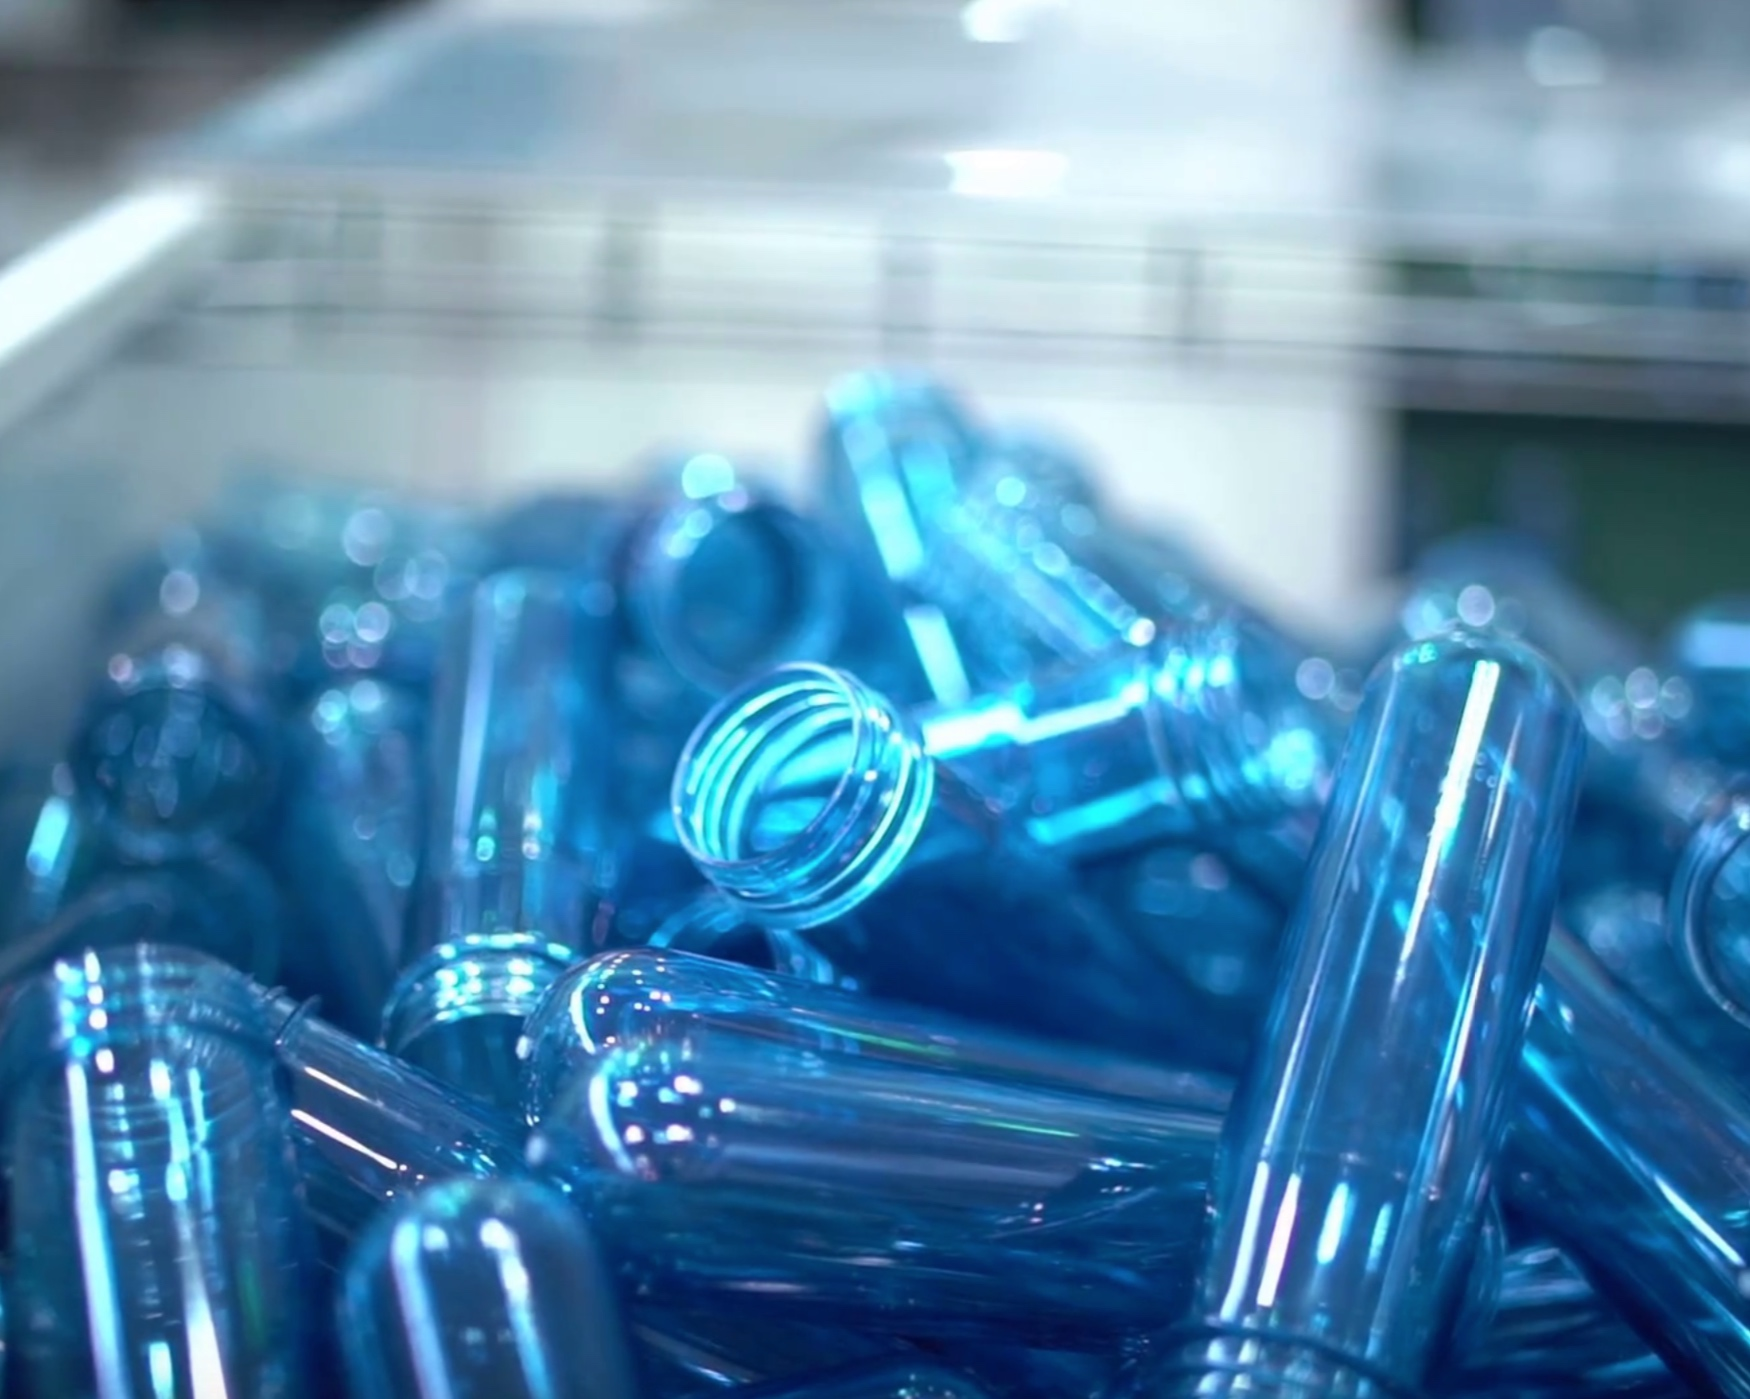 Plastic attracts other pollutants - Additives in plastics, like flame retardants, BPAs, and PVCs, can leach their own toxins. These oily poisons repel water and stick to petroleum-based objects like plastic debris.